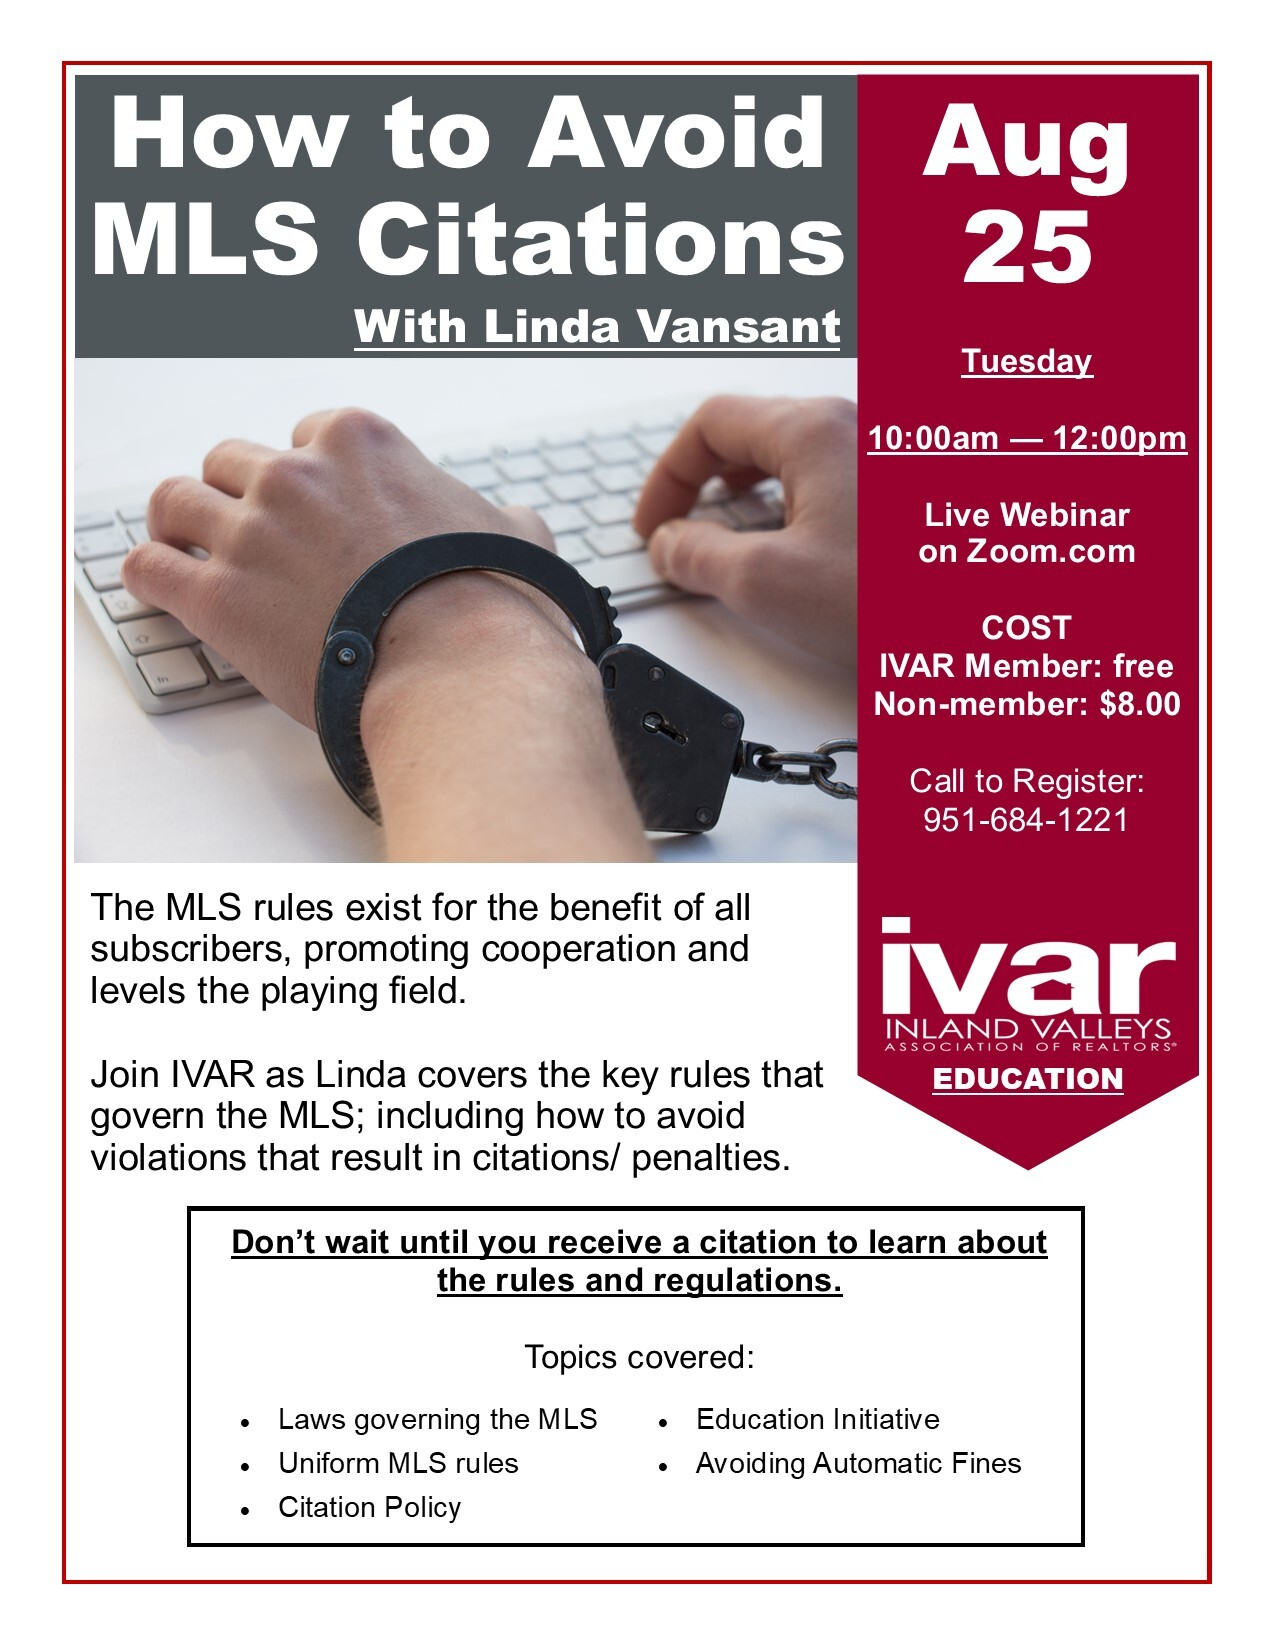 Webinar: How to Avoid MLS Citations w/ Linda Vansant